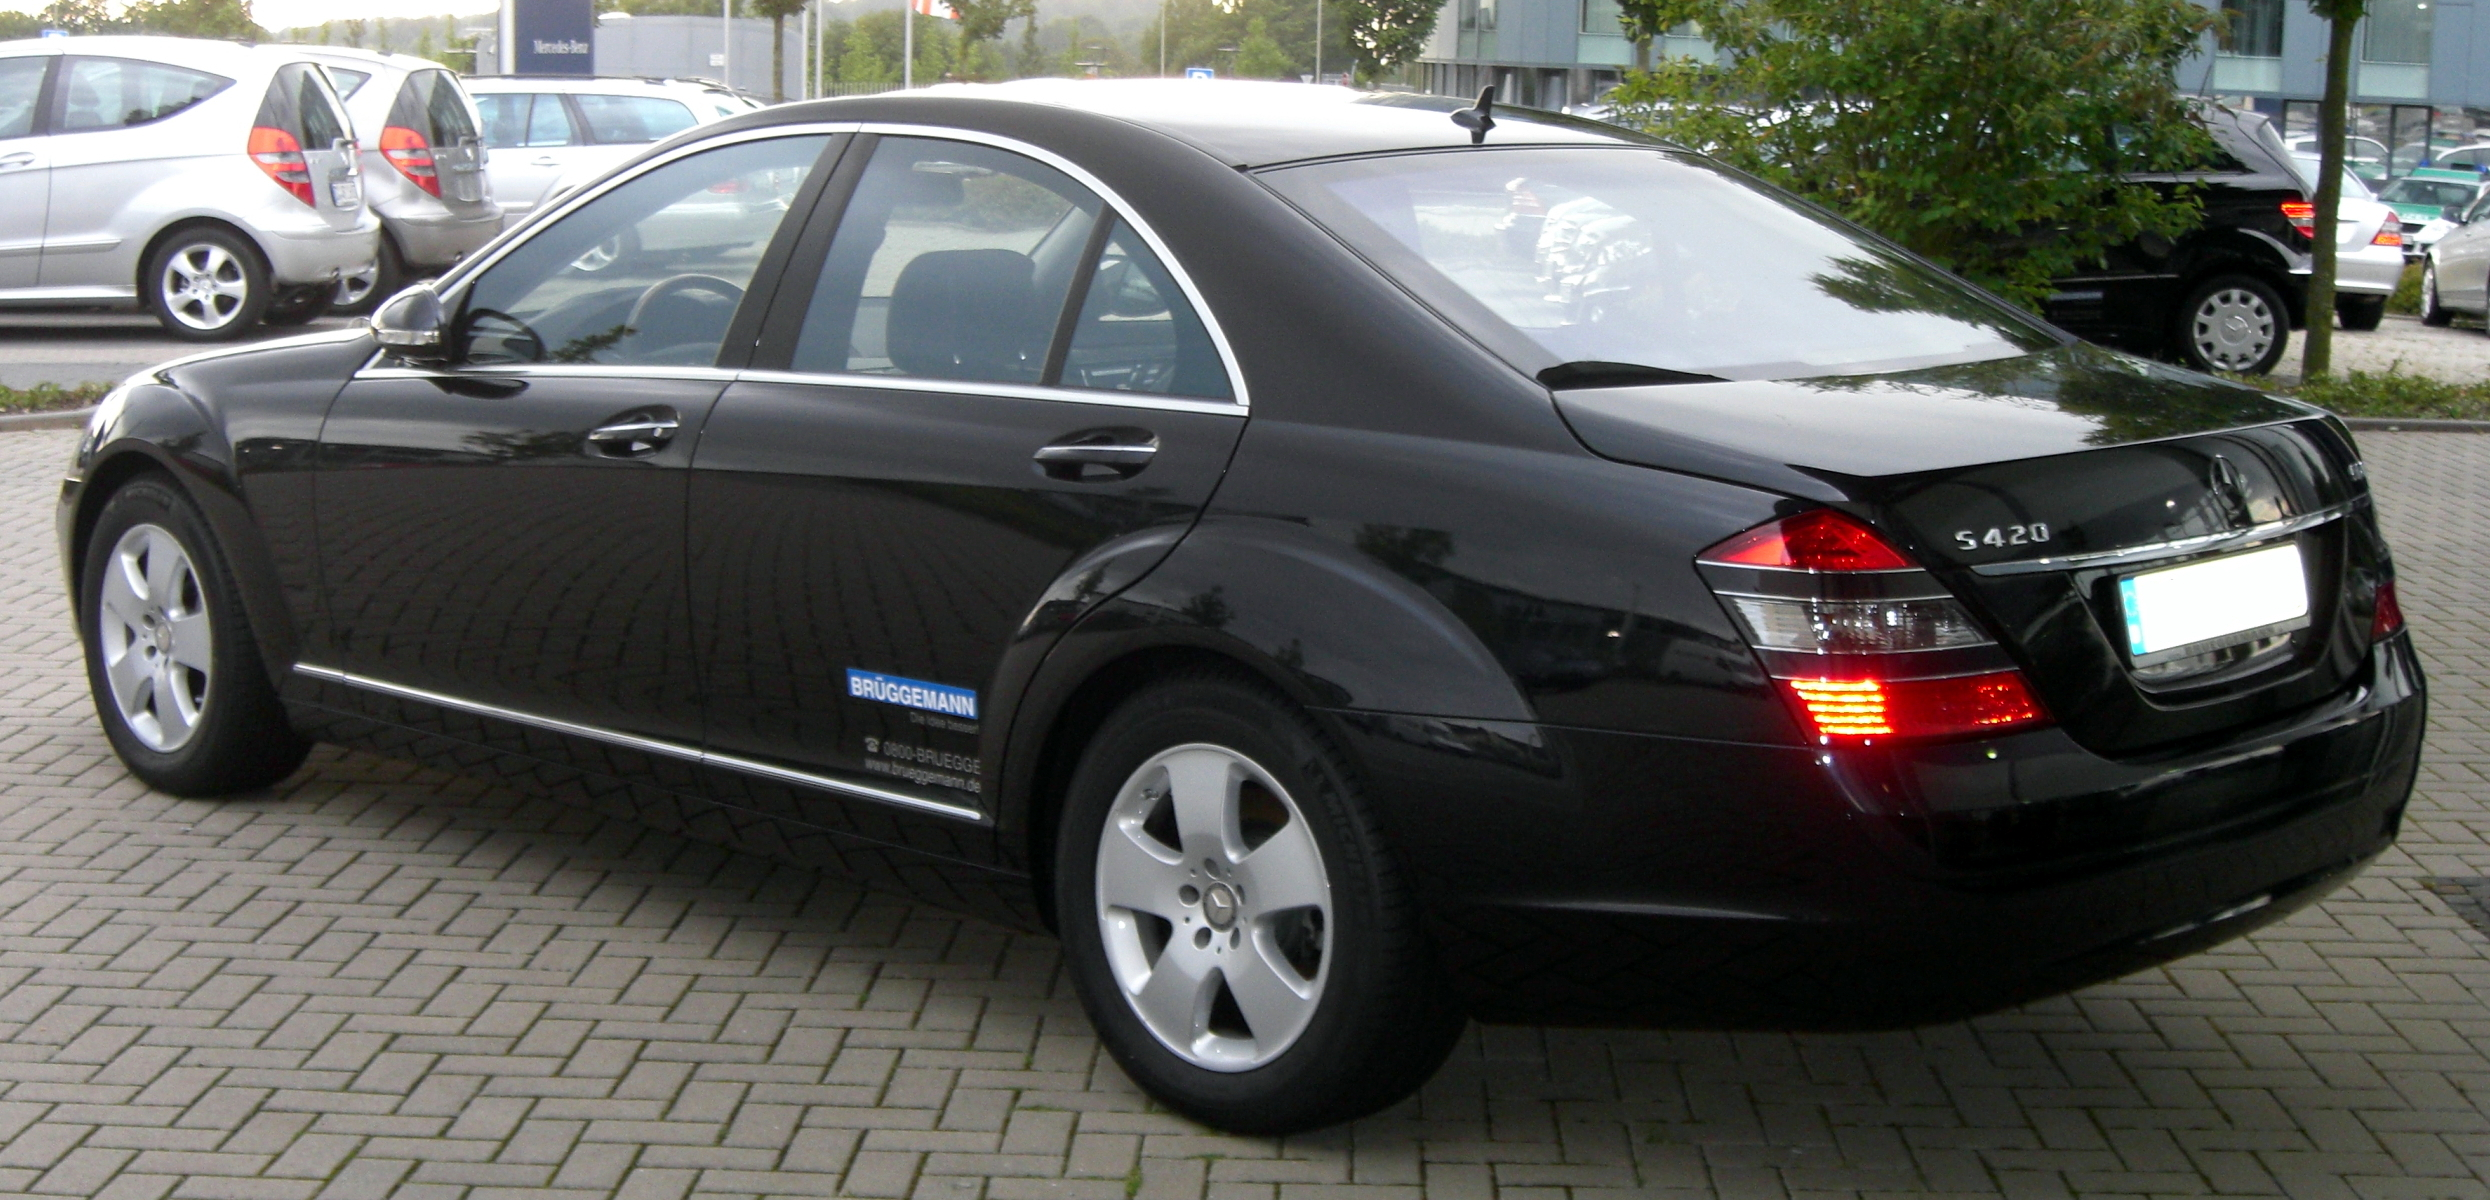 File Mercedes S 420 Cdi Rear Jpg Wikimedia Commons